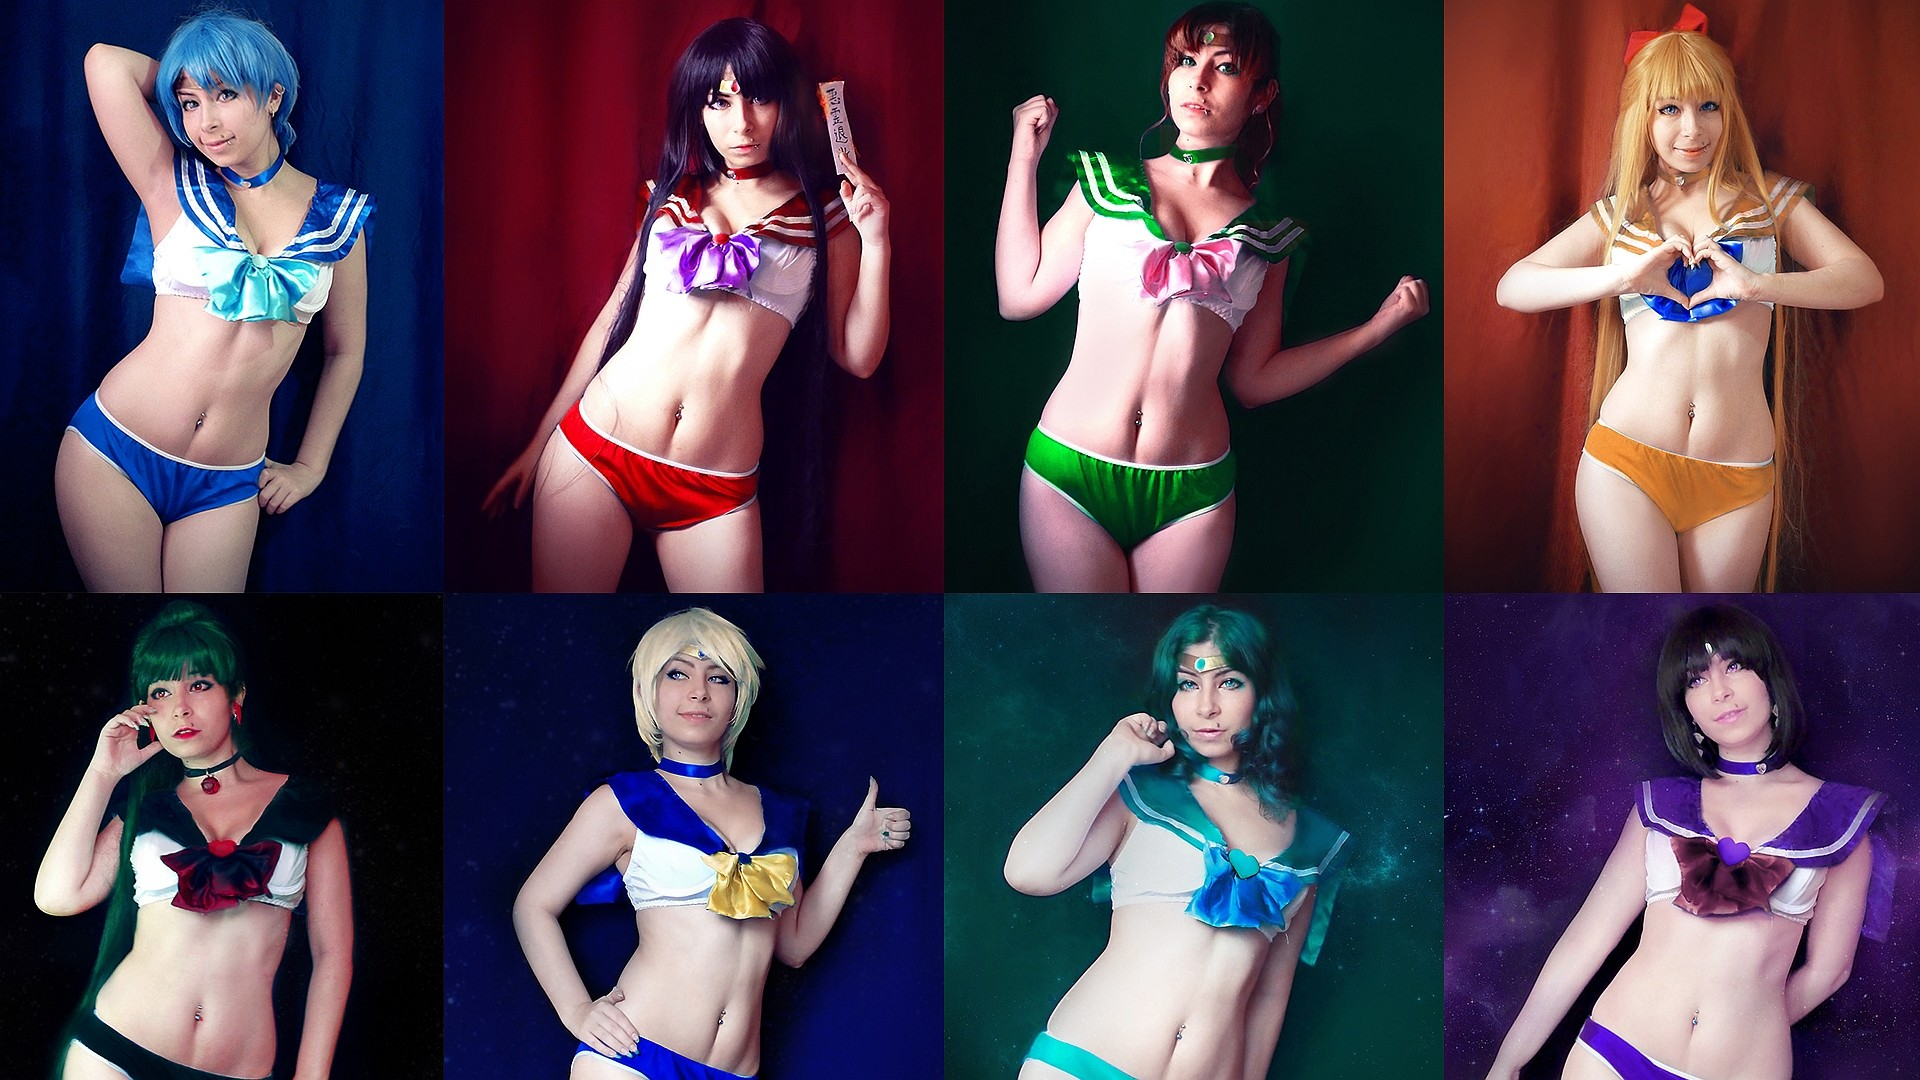 1920x1080 Wallpaper of Inner & Outer Sailor Scouts cosplay from Sailor Moon